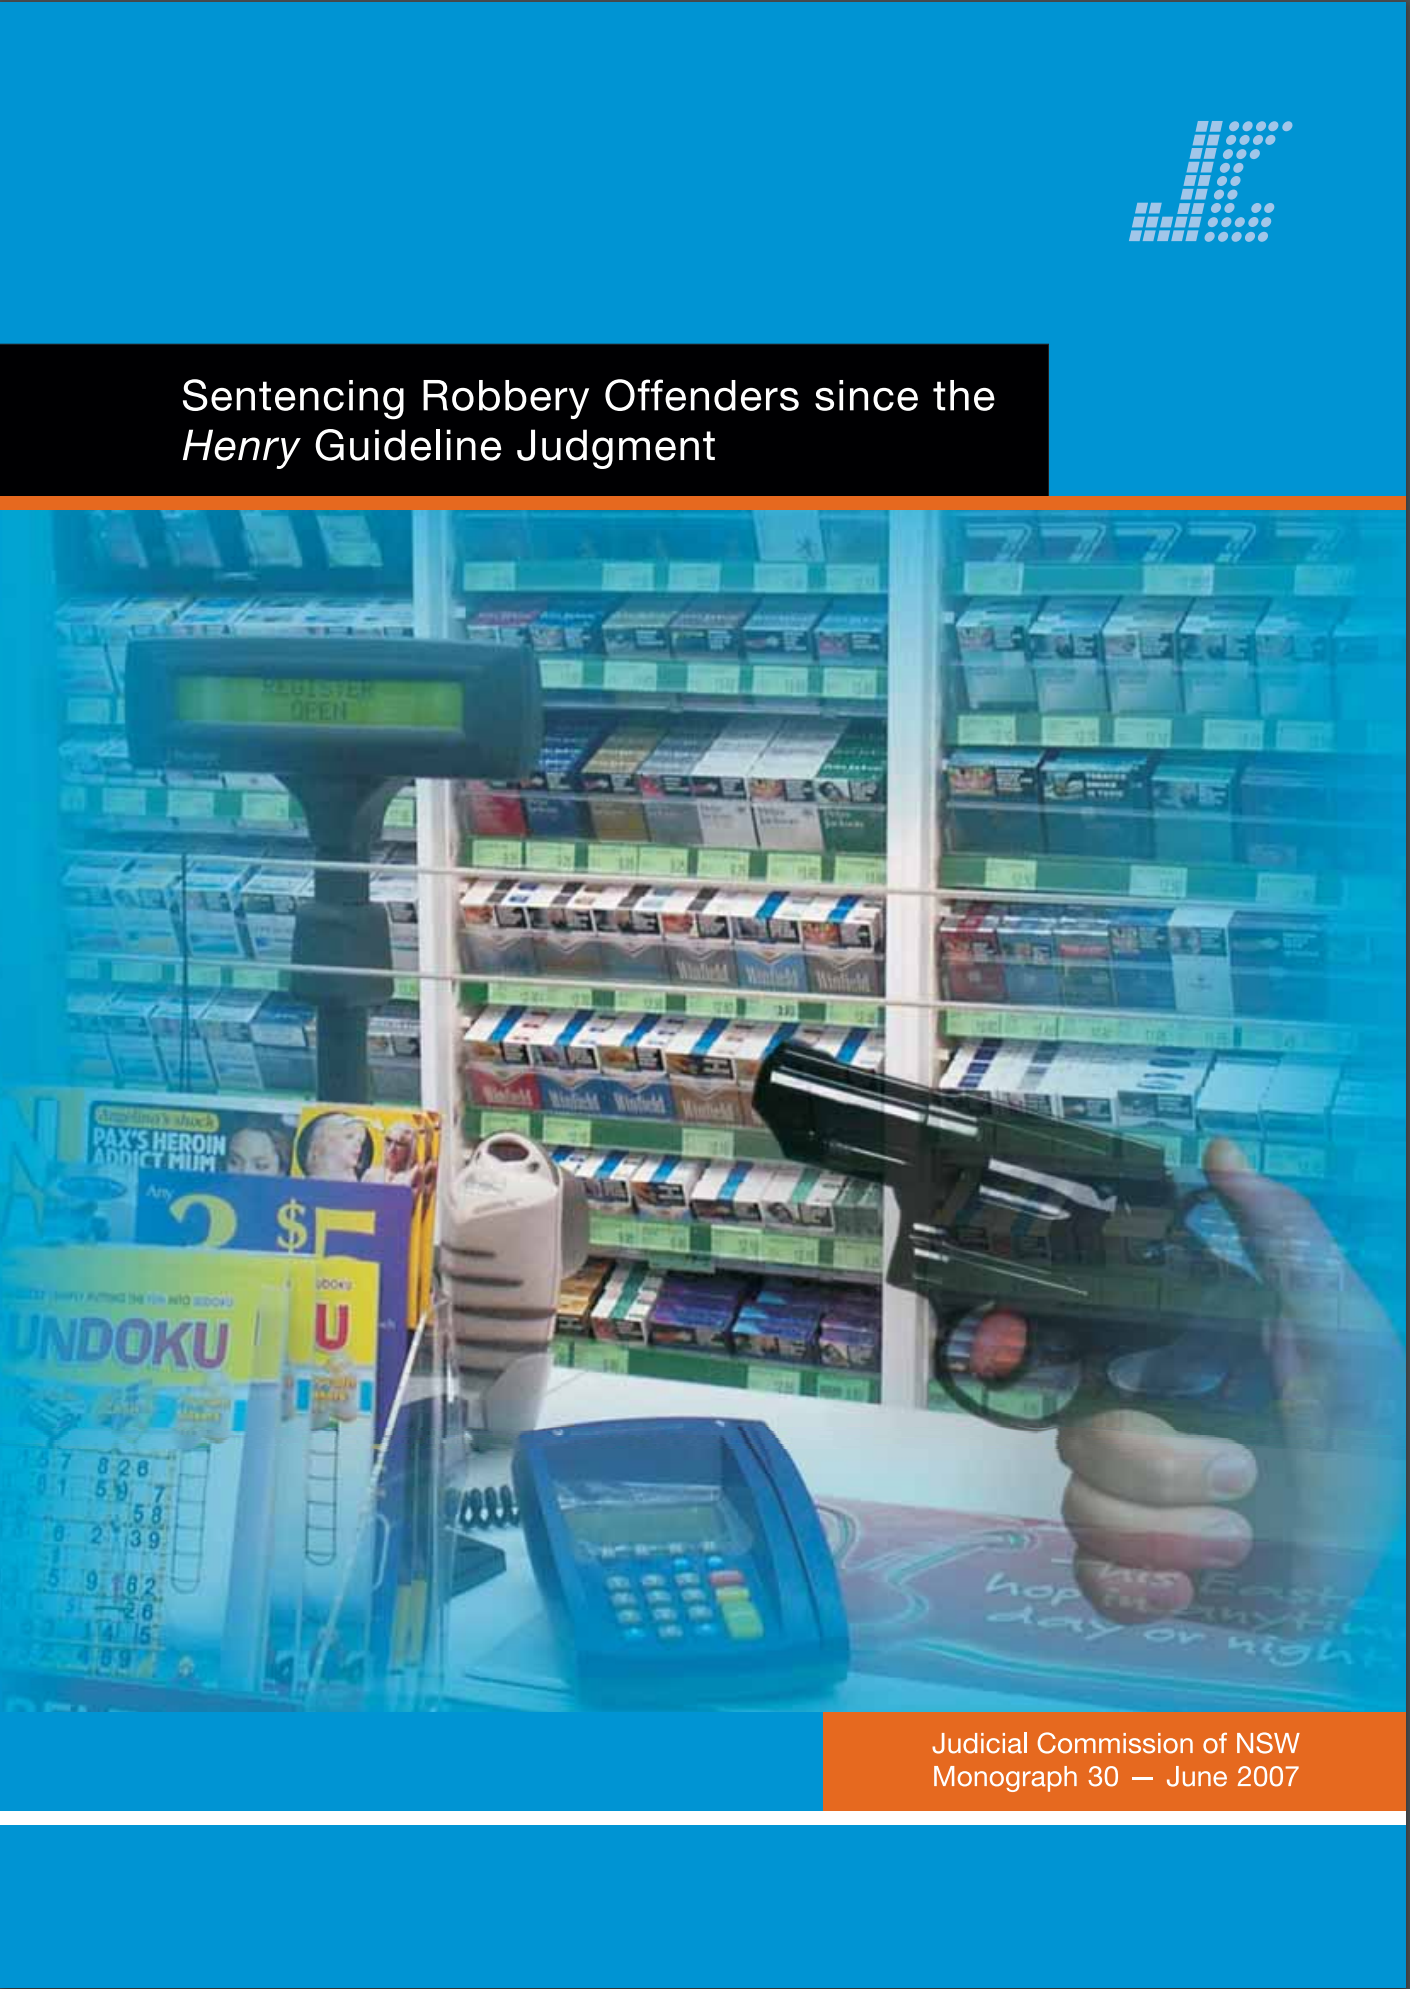 Research Monograph 30 Cover - Sentencing Robbery offenders since the Henry Guideline Judgment